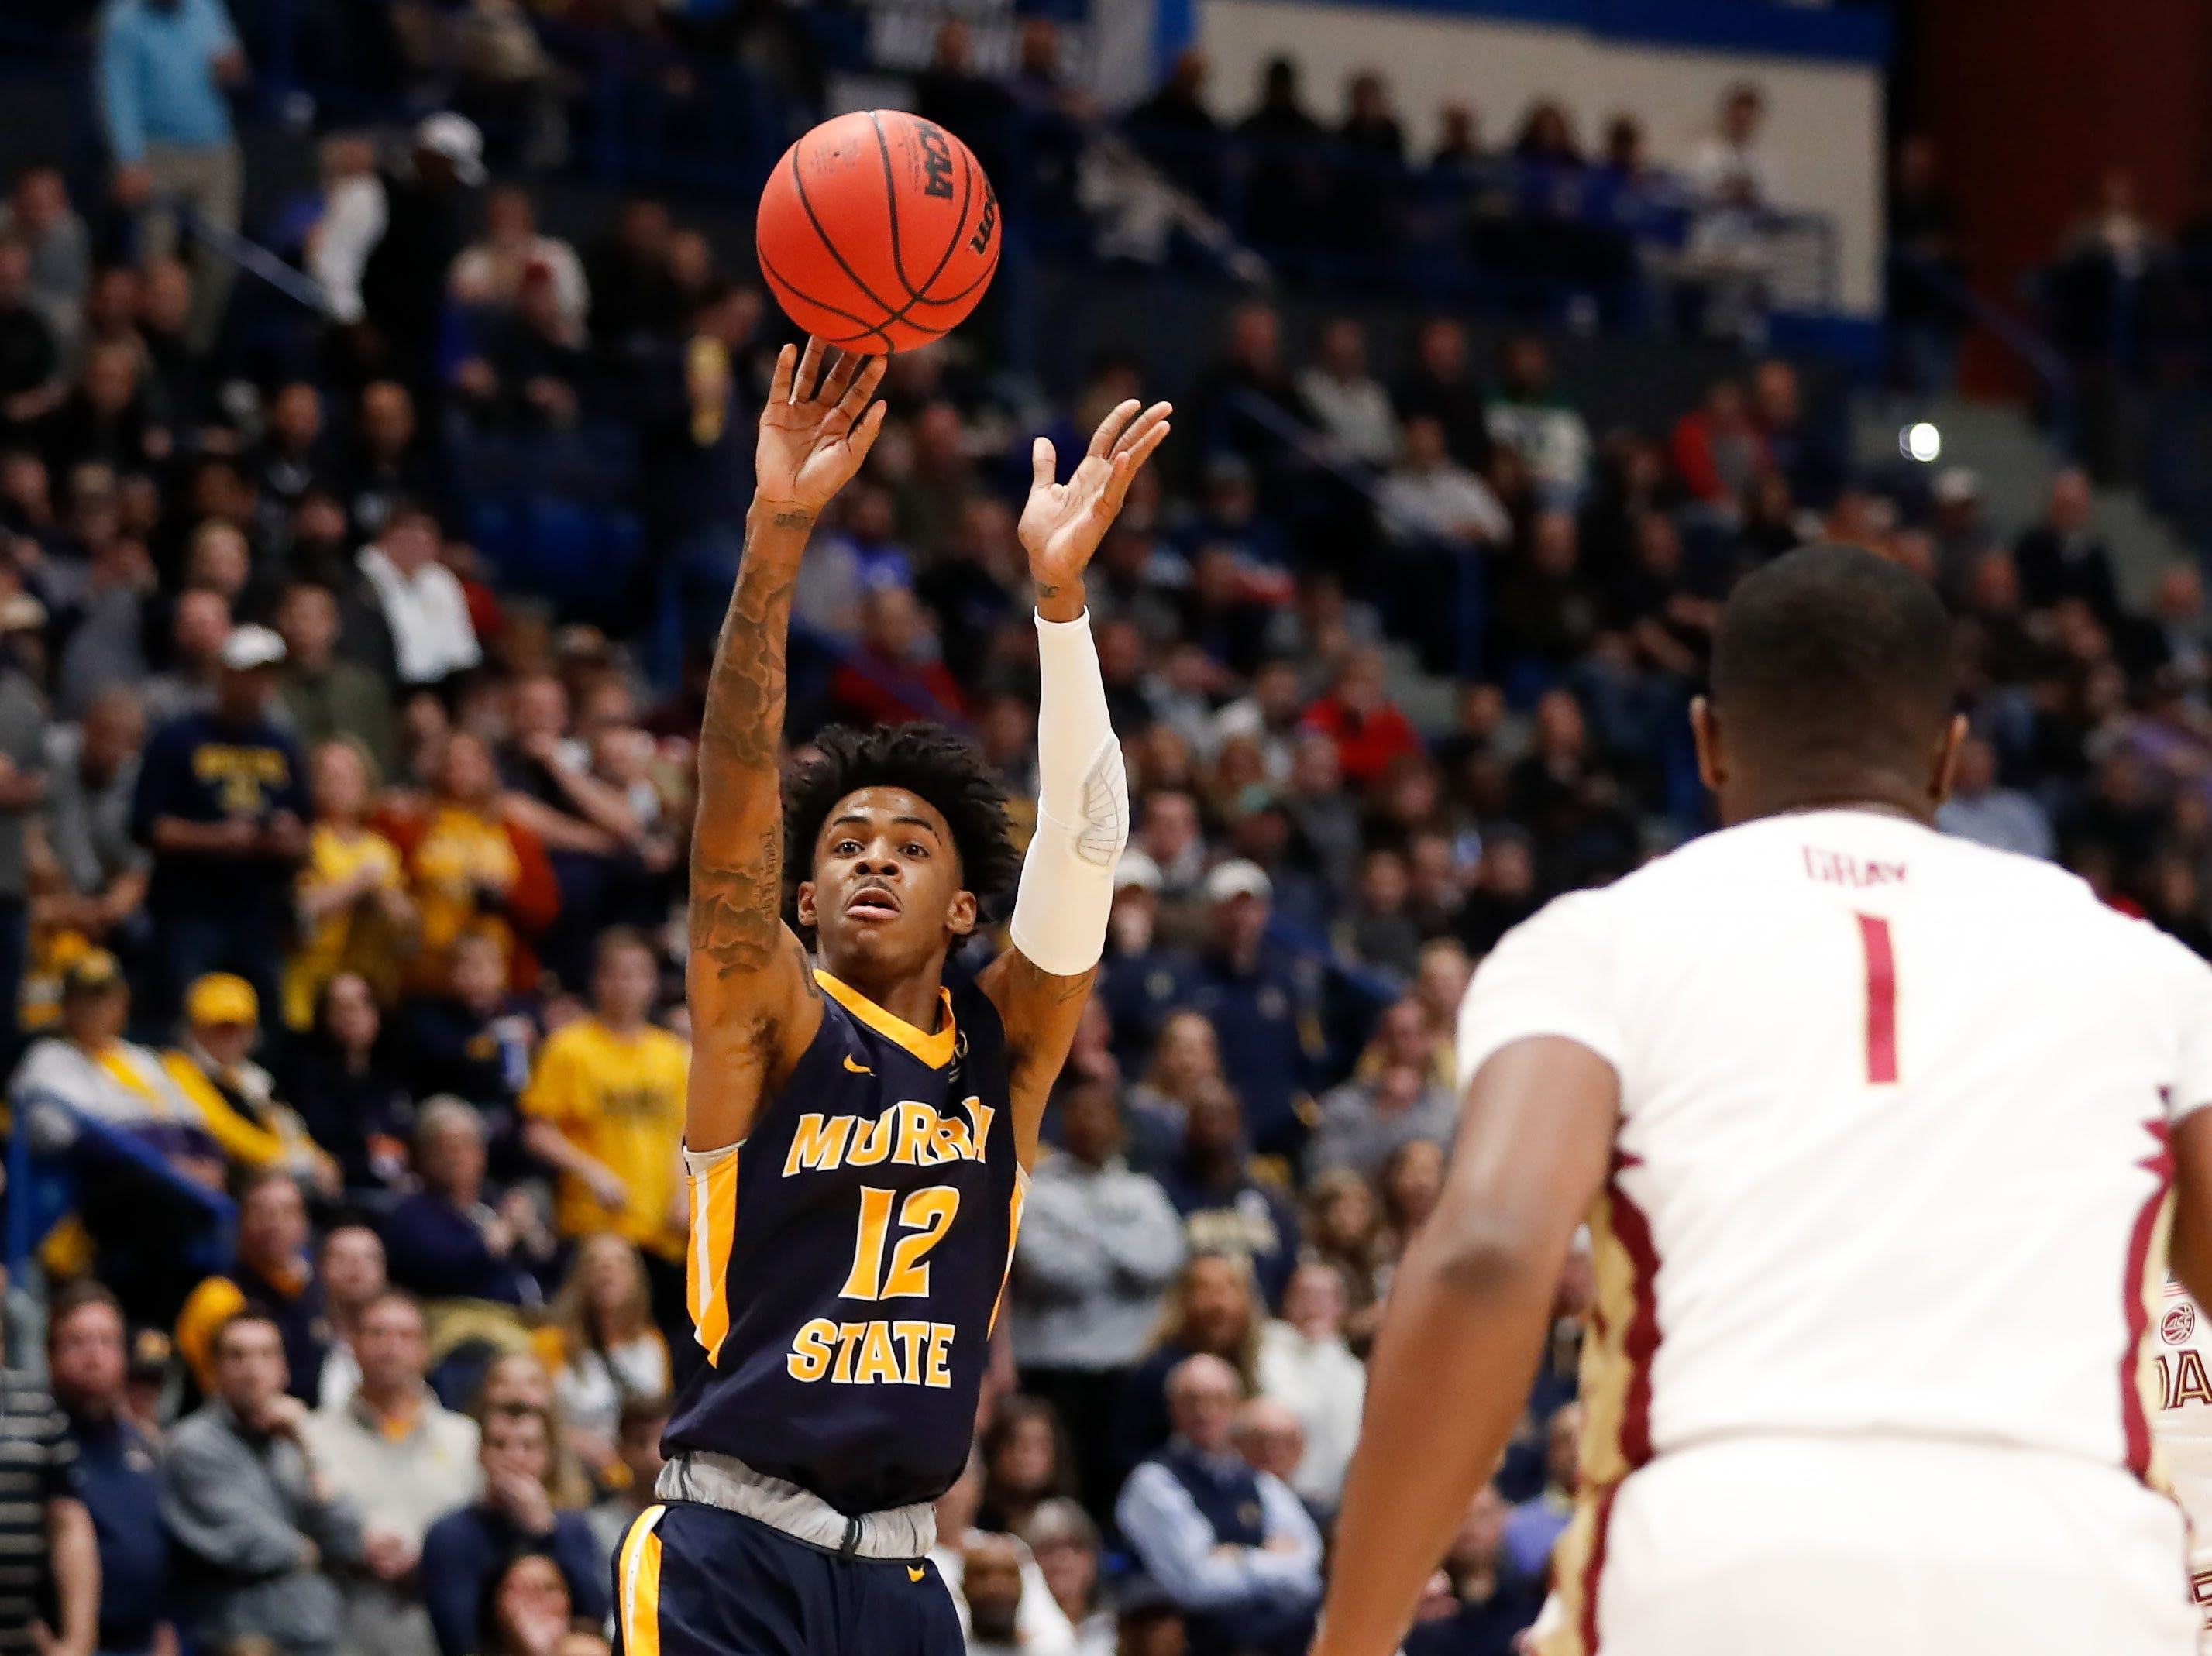 Mar 23, 2019; Hartford, CT, USA; Murray State Racers guard Ja Morant (12) attempts a shot against the Florida State Seminoles during the first half of a game in the second round of the 2019 NCAA Tournament at XL Center. Mandatory Credit: David Butler II-USA TODAY Sports